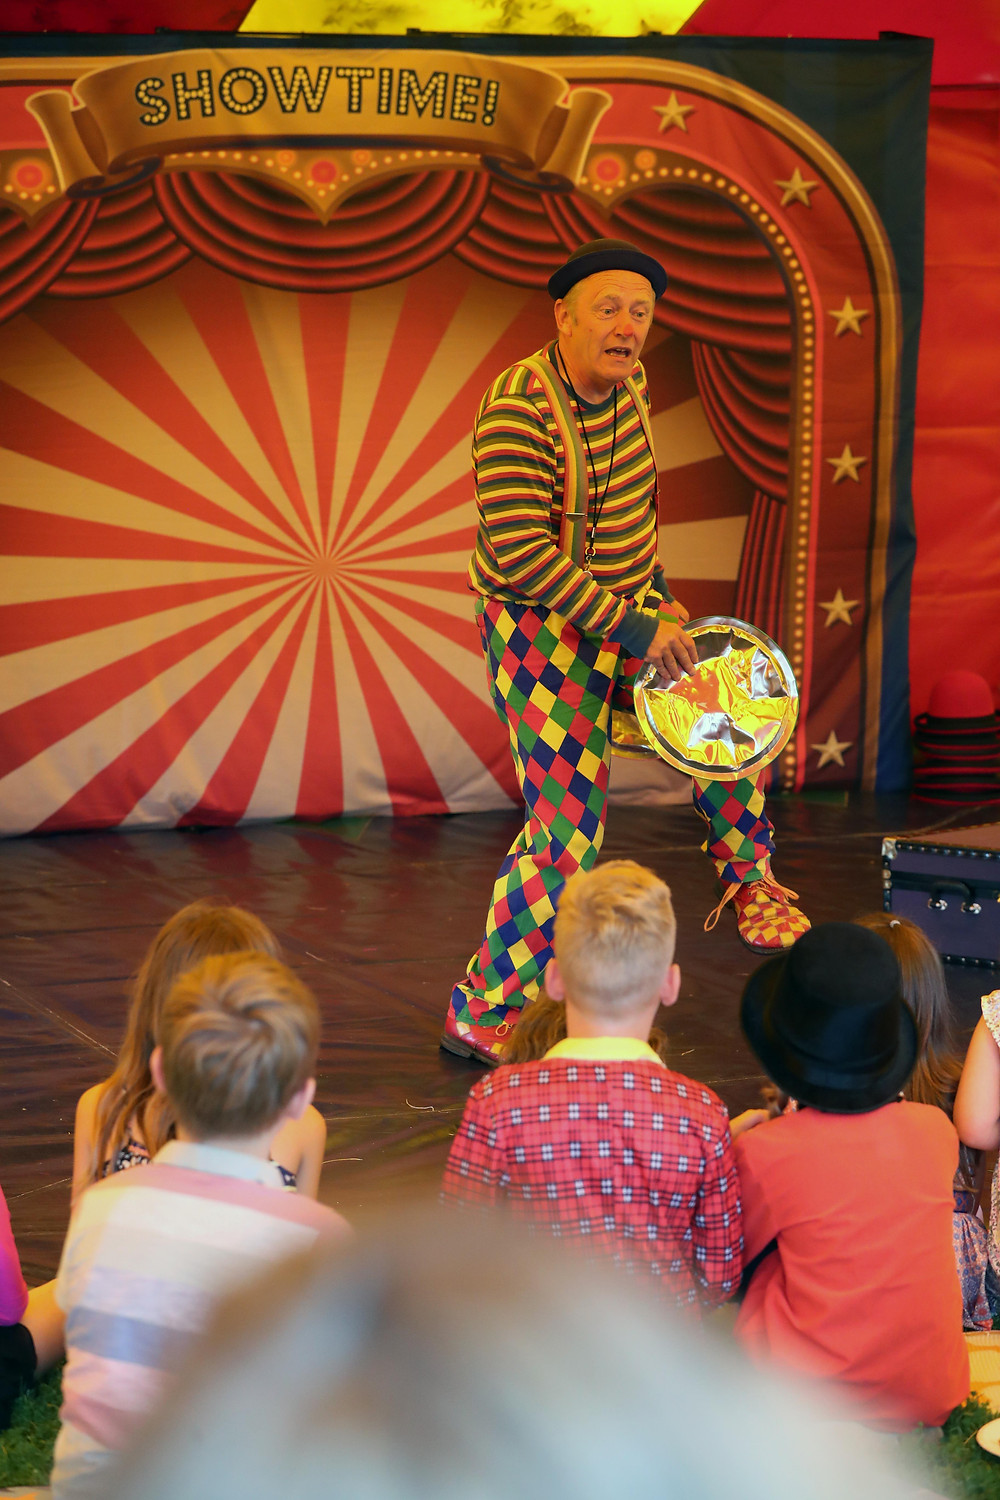 amazing children's entertainer